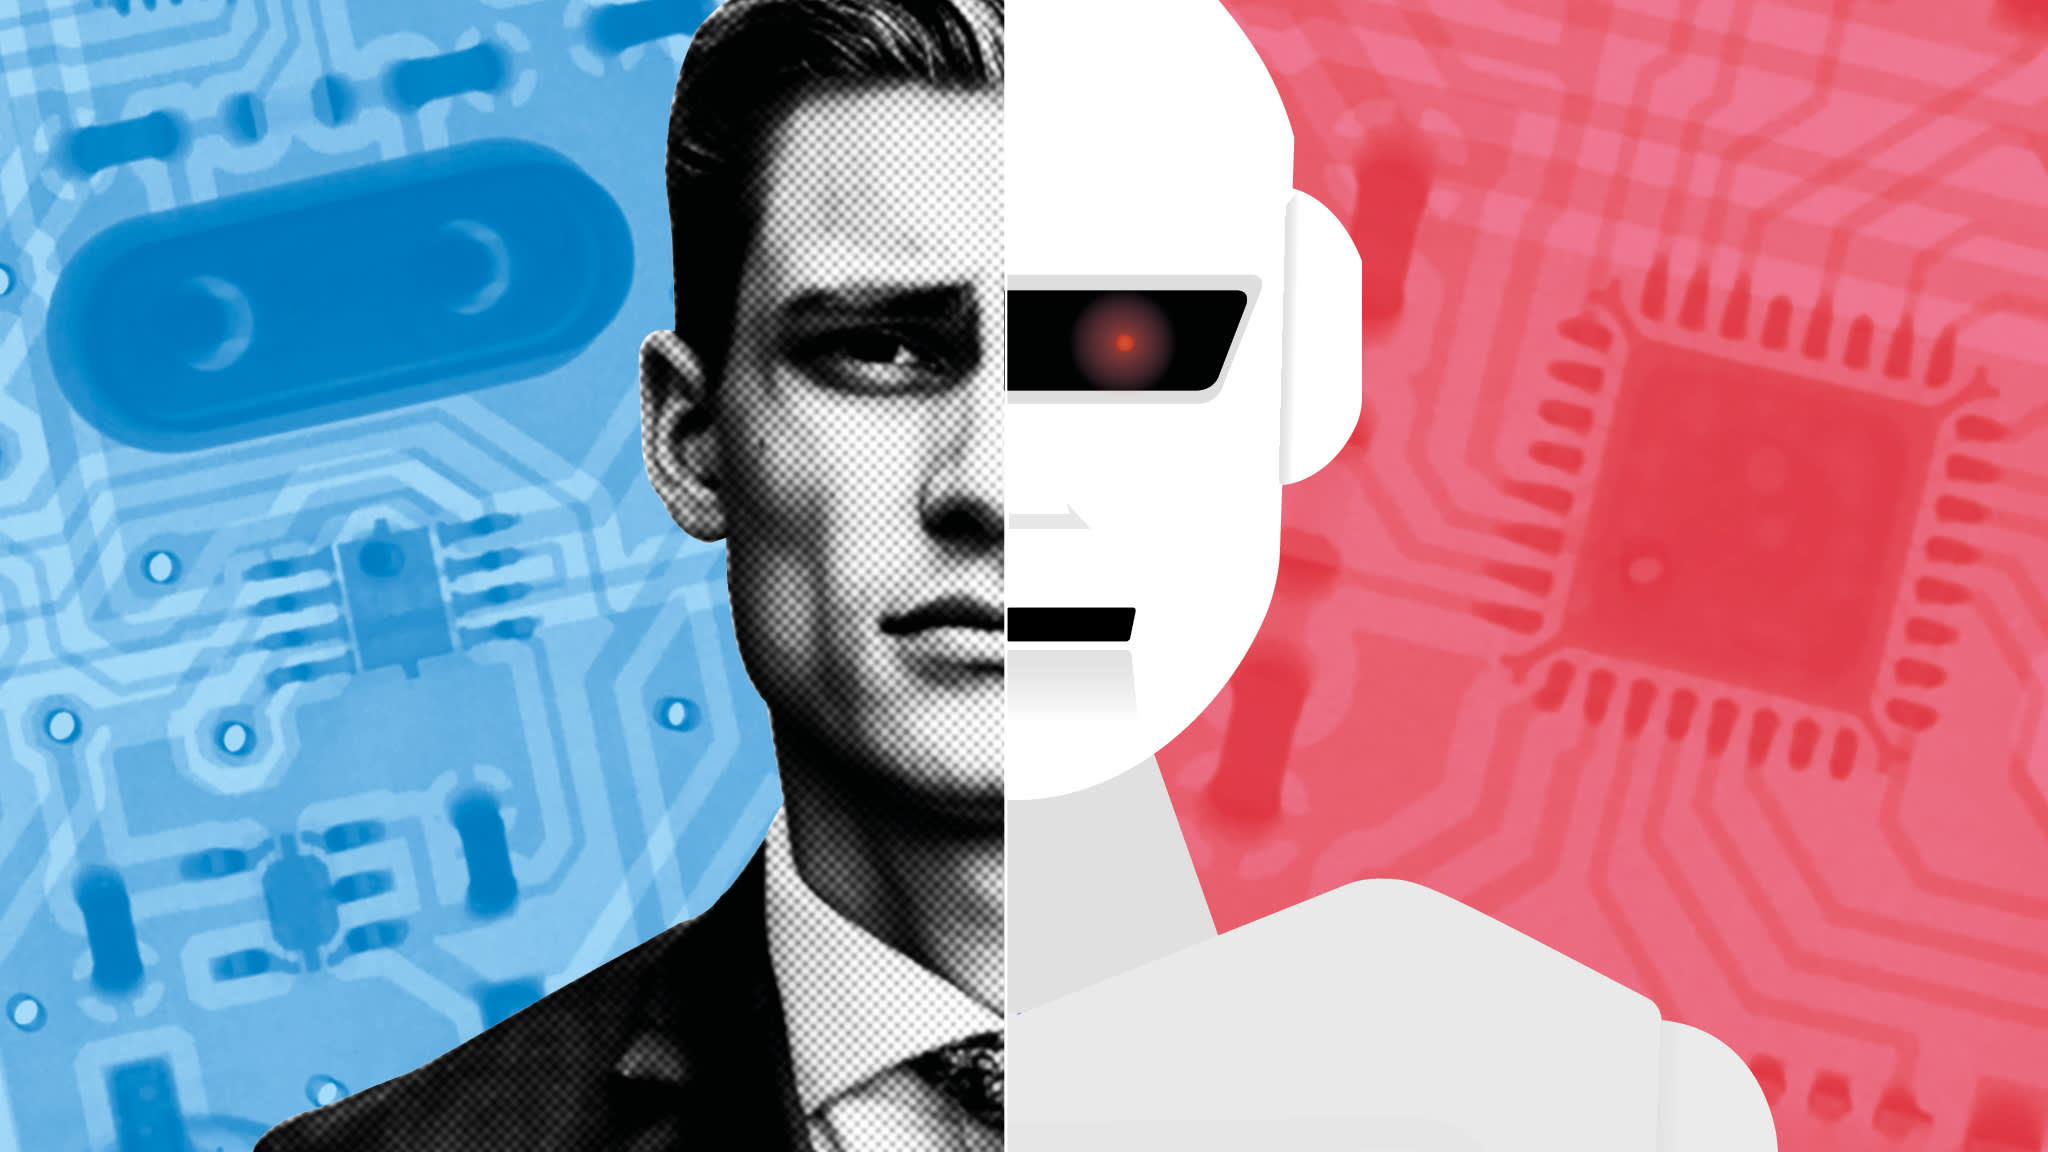 Artificial intelligence: when humans and robots coexist